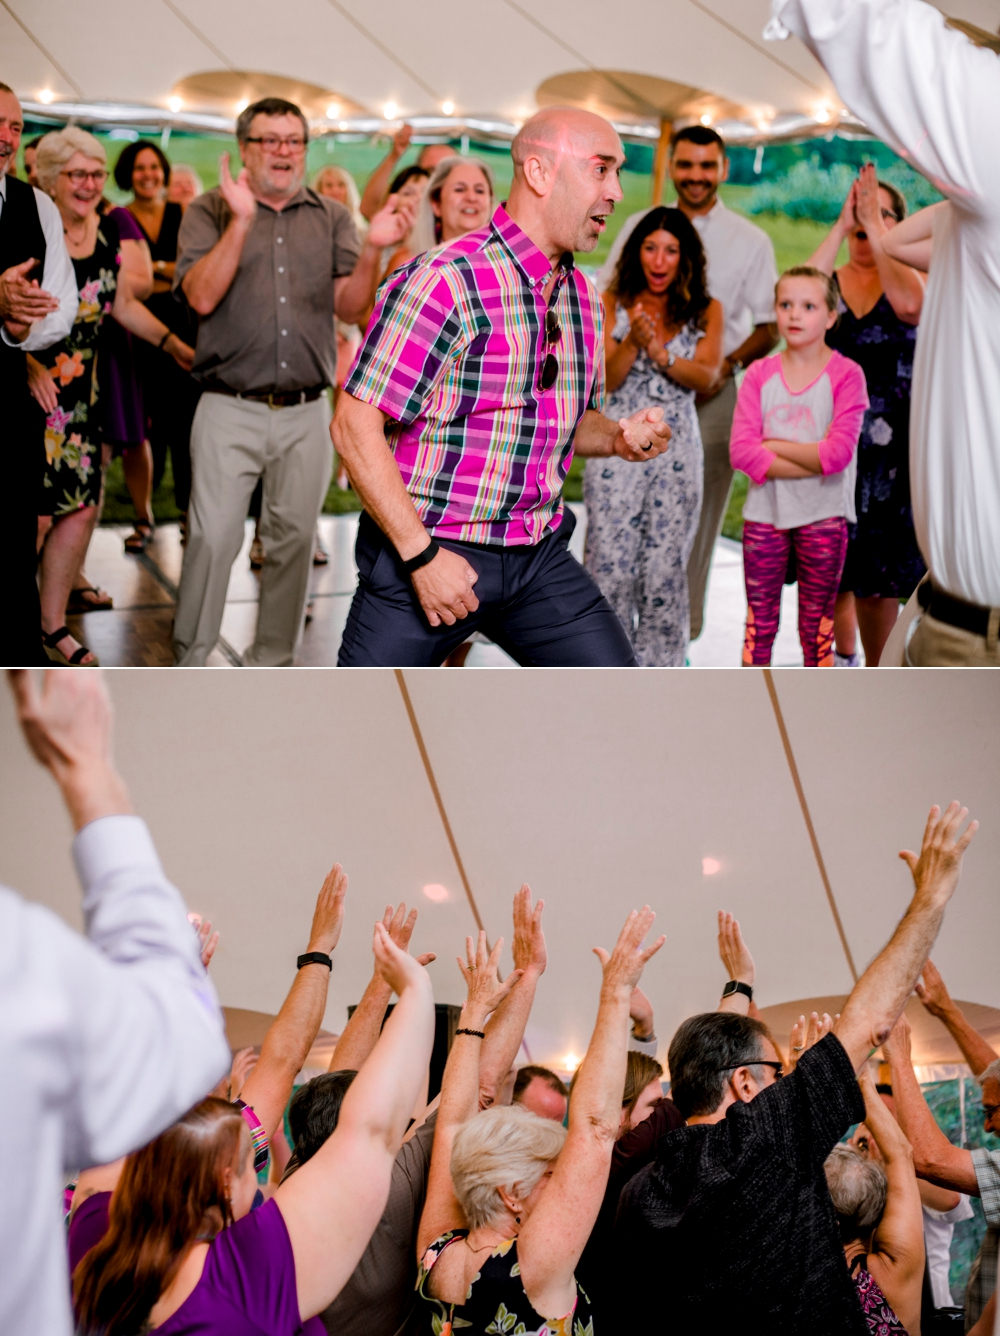 SomerbyJonesPhotography__VermontWedding_VTWedding_BackyardVermontWedding_0045.jpg